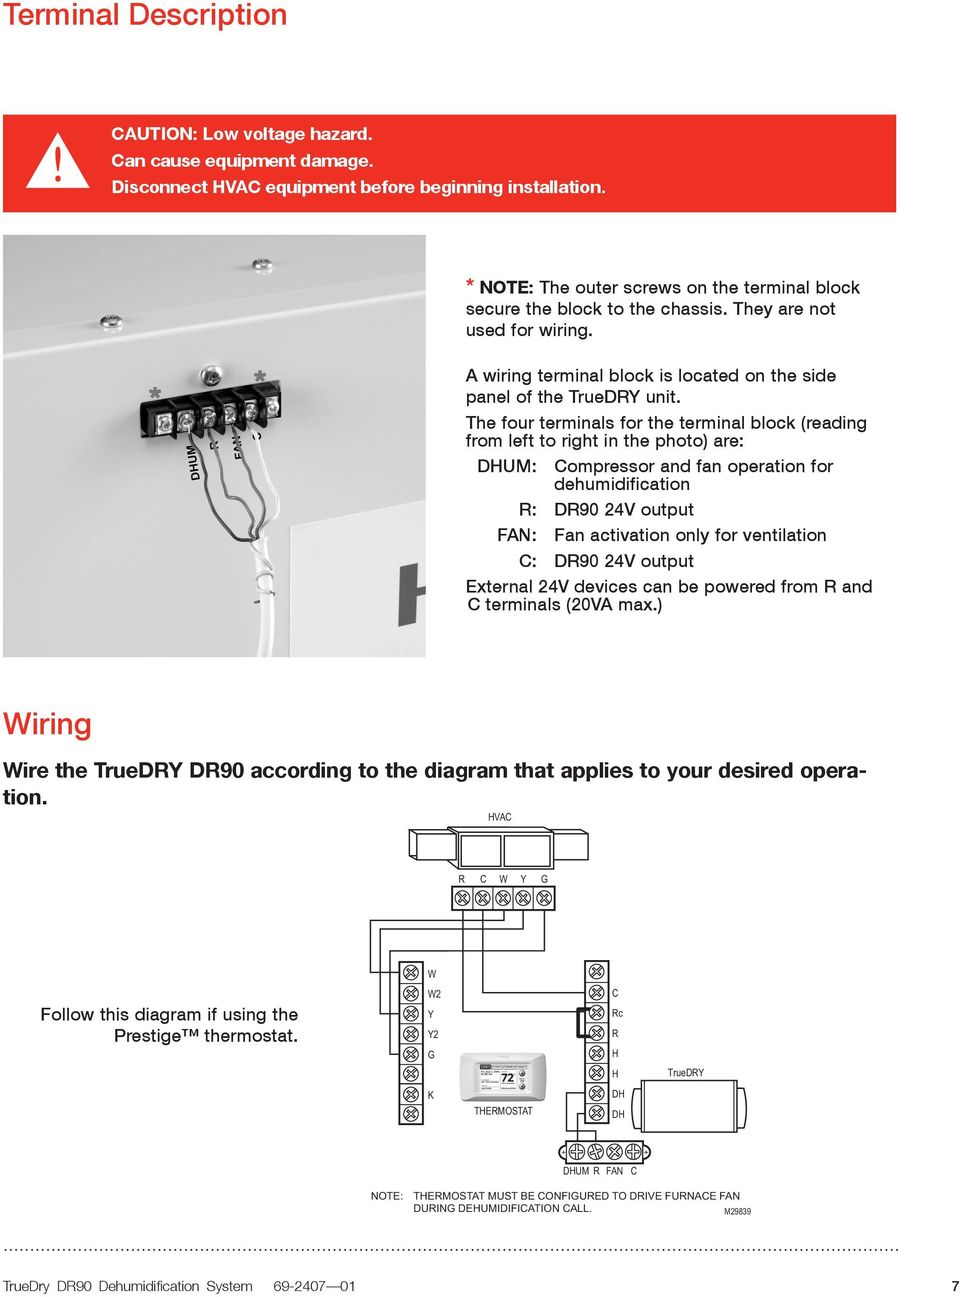 Truedry Dr90 Professional Installation Guide Optional Controls Sold Hvac Drawing Reading The Four Terminals For Terminal Block From Left To Right In Photo